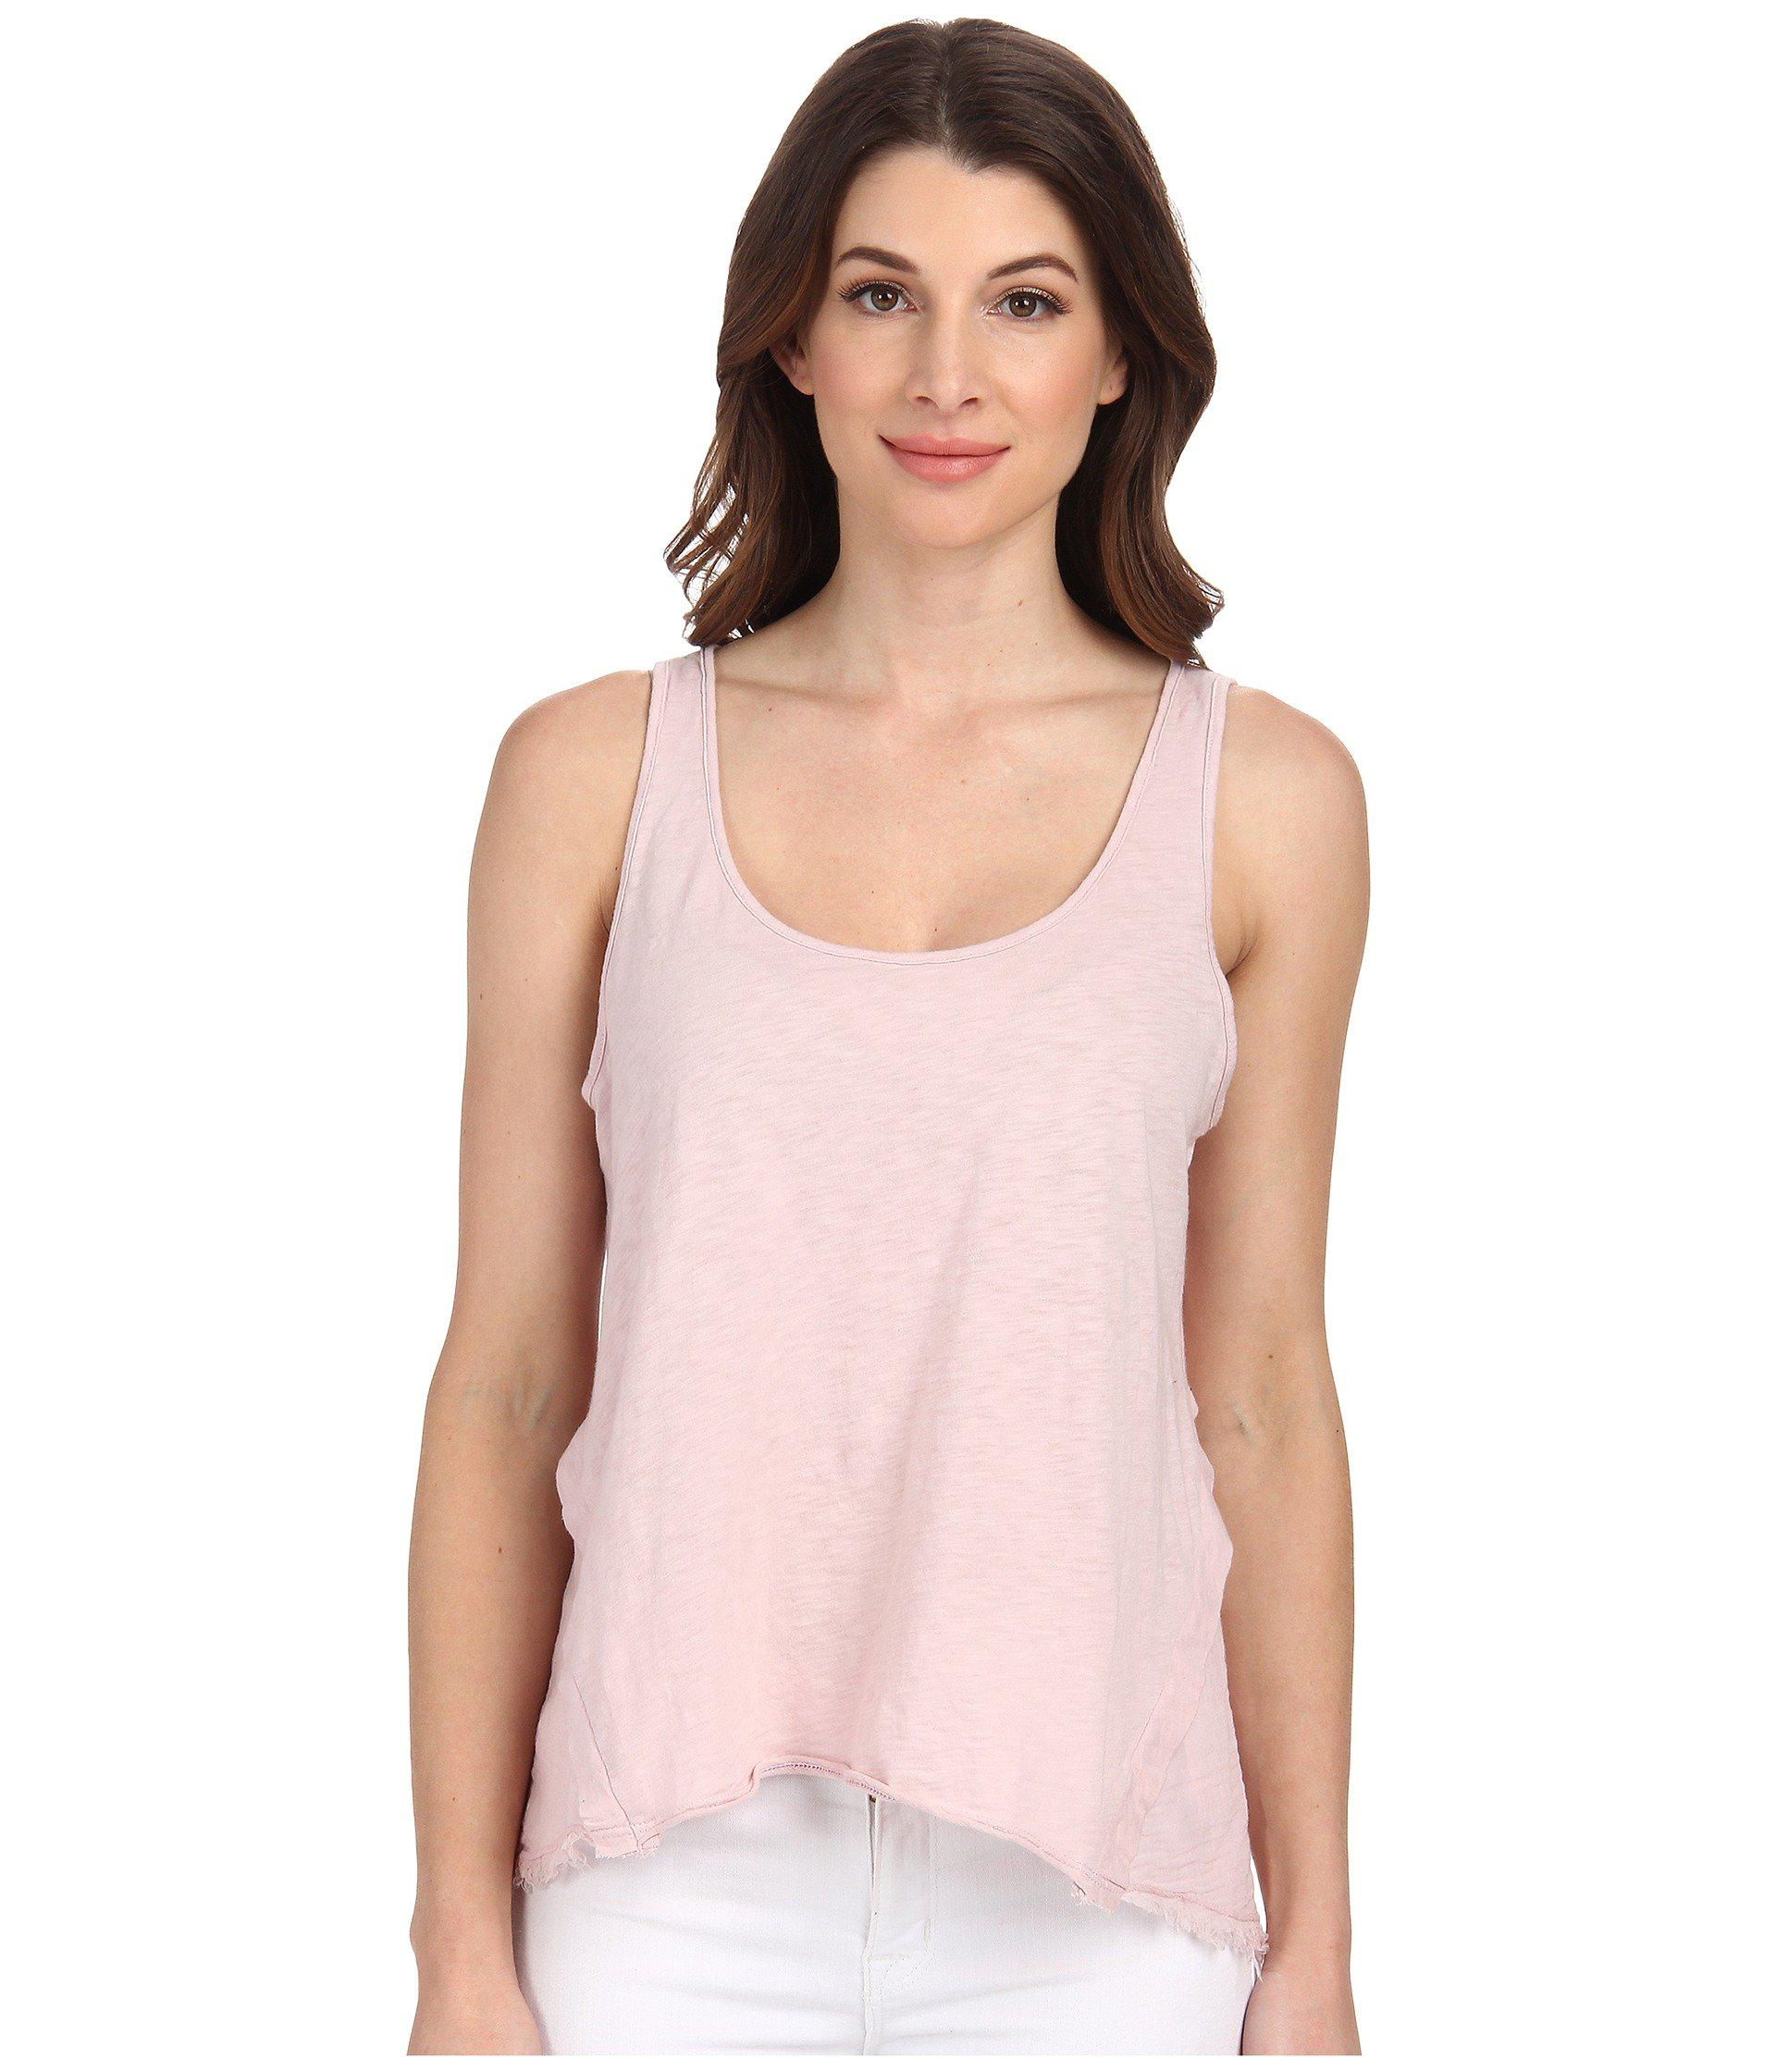 Velvet by Graham & Spencer Womens Nice Tank Top Confetti - Shirts & Tops